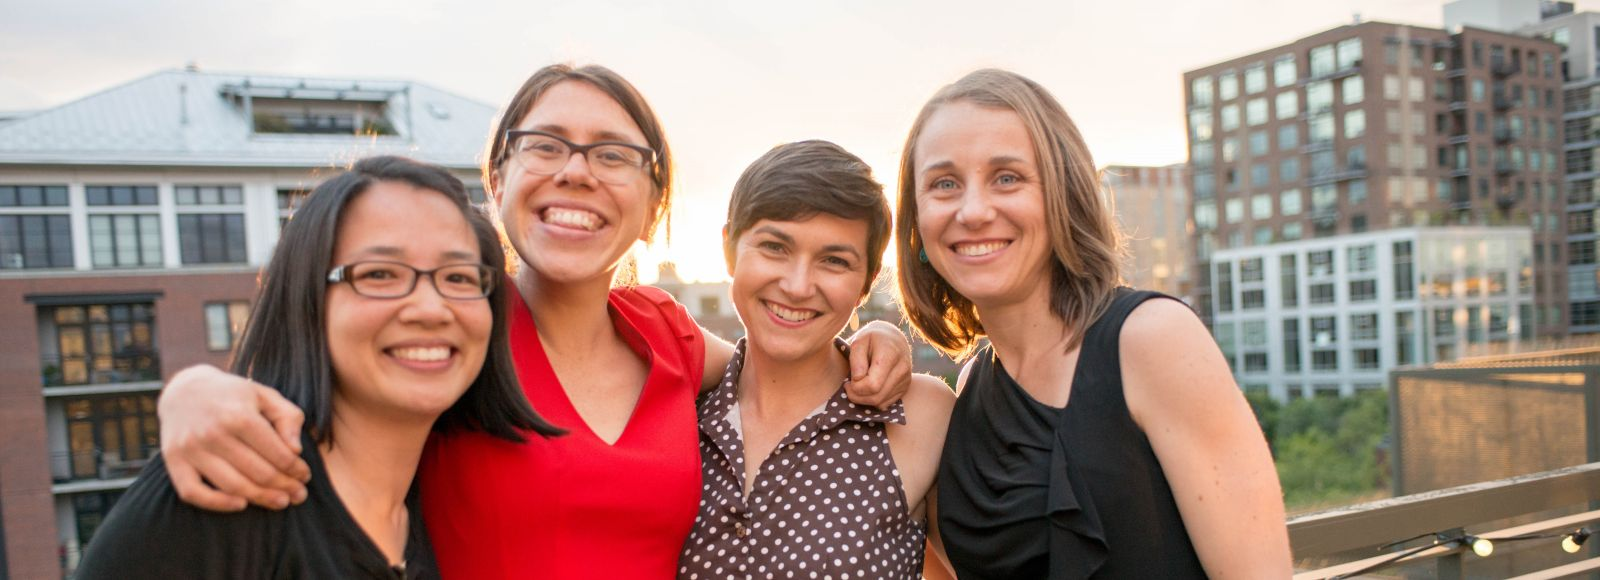 the sun begins to set behind four women standing on a roof with Portland's cityscape in the background